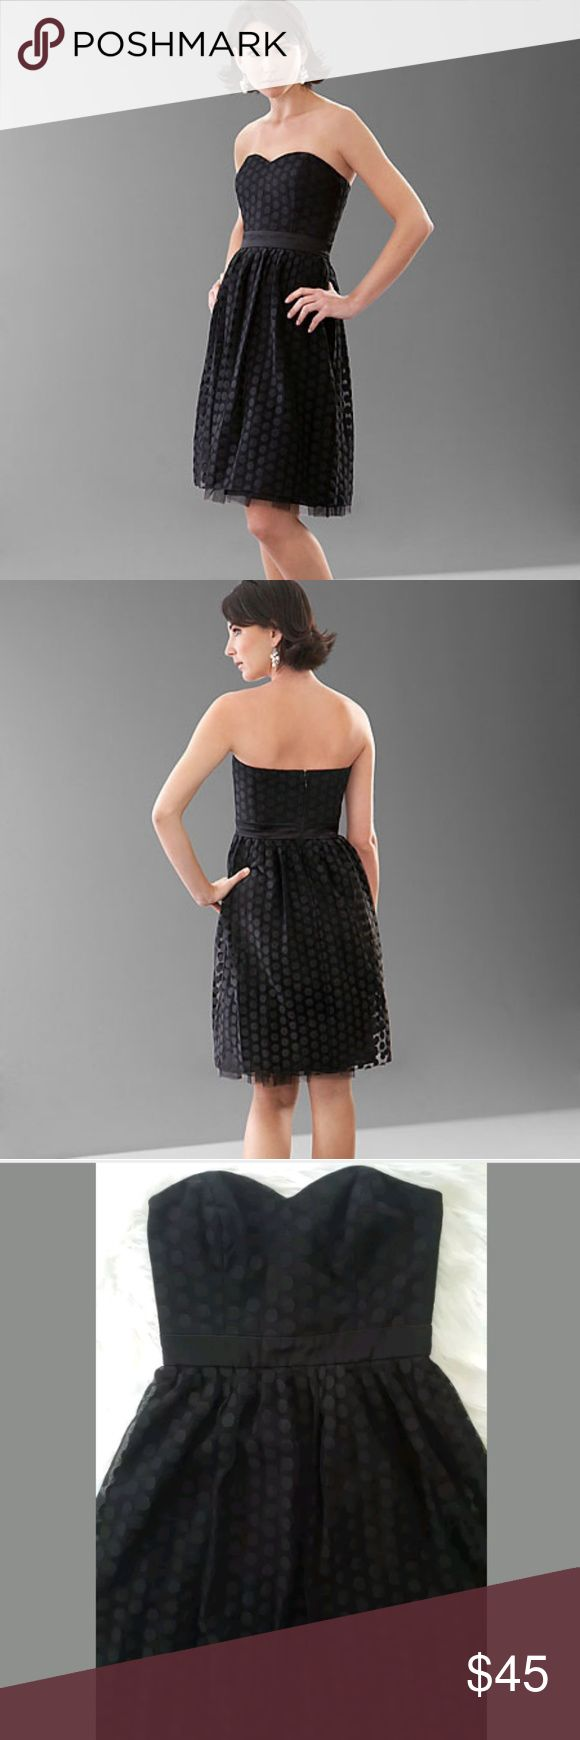 White House Black Market Black Polka Dot dress Black Polka dot dress size 4  Sweet heart neckline  Strapless Great condition great dress for a night out or for holiday dinner! White House Black Market Dresses